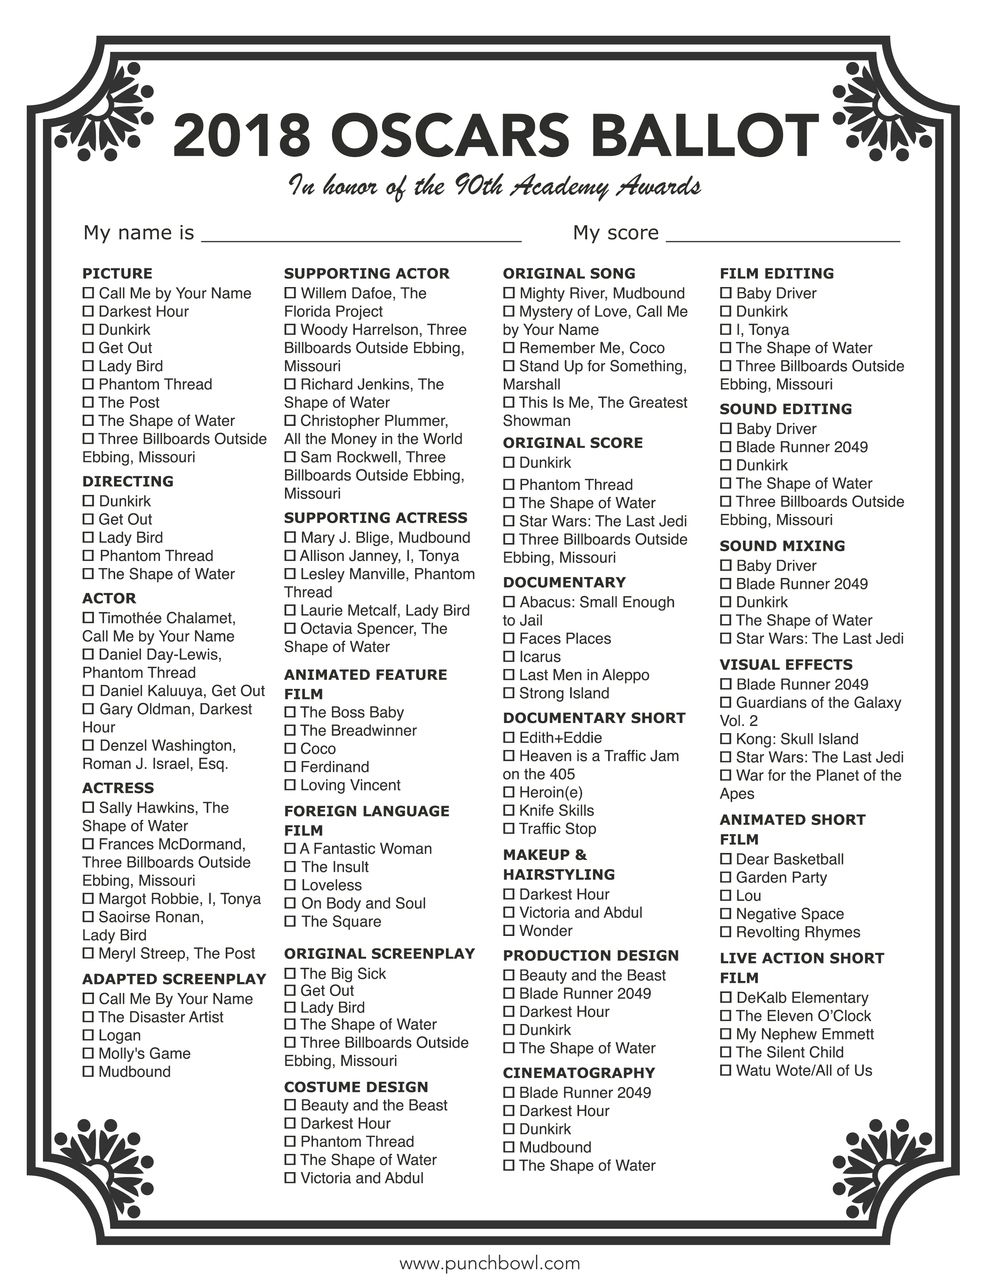 photo regarding Oscar Ballots Printable named Printable Oscars Ballot Hollywood Occasion within just 2019 Oscar